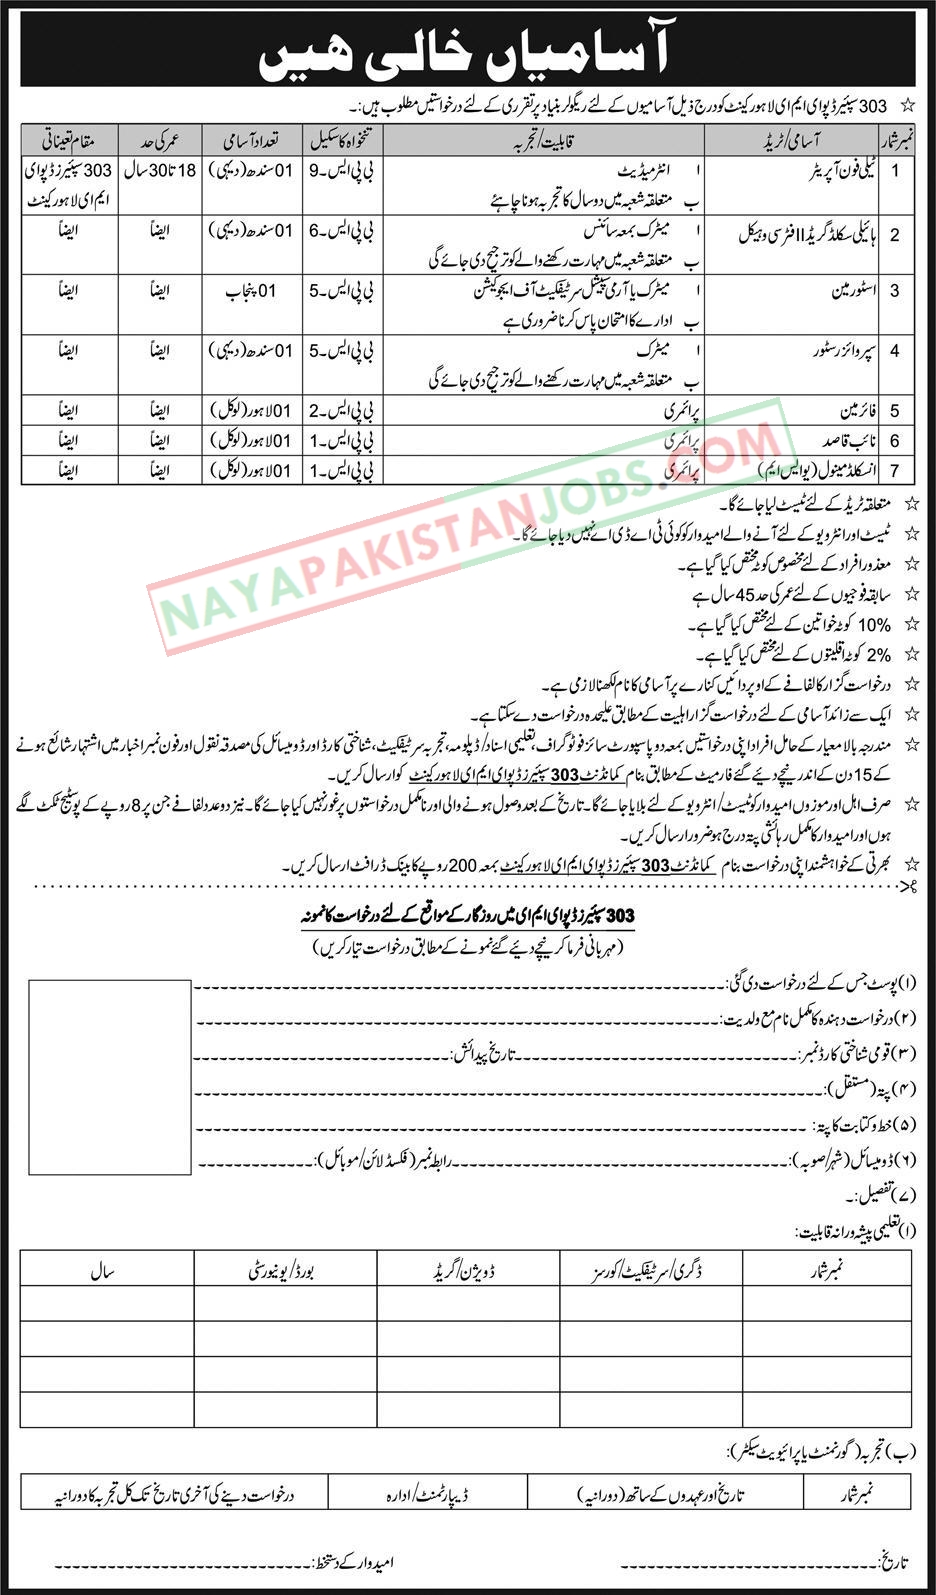 Latest Vacancies Announced in Pak Army 303 Spares Depot EME Lahore 14 October 2018 - Naya Pakistan